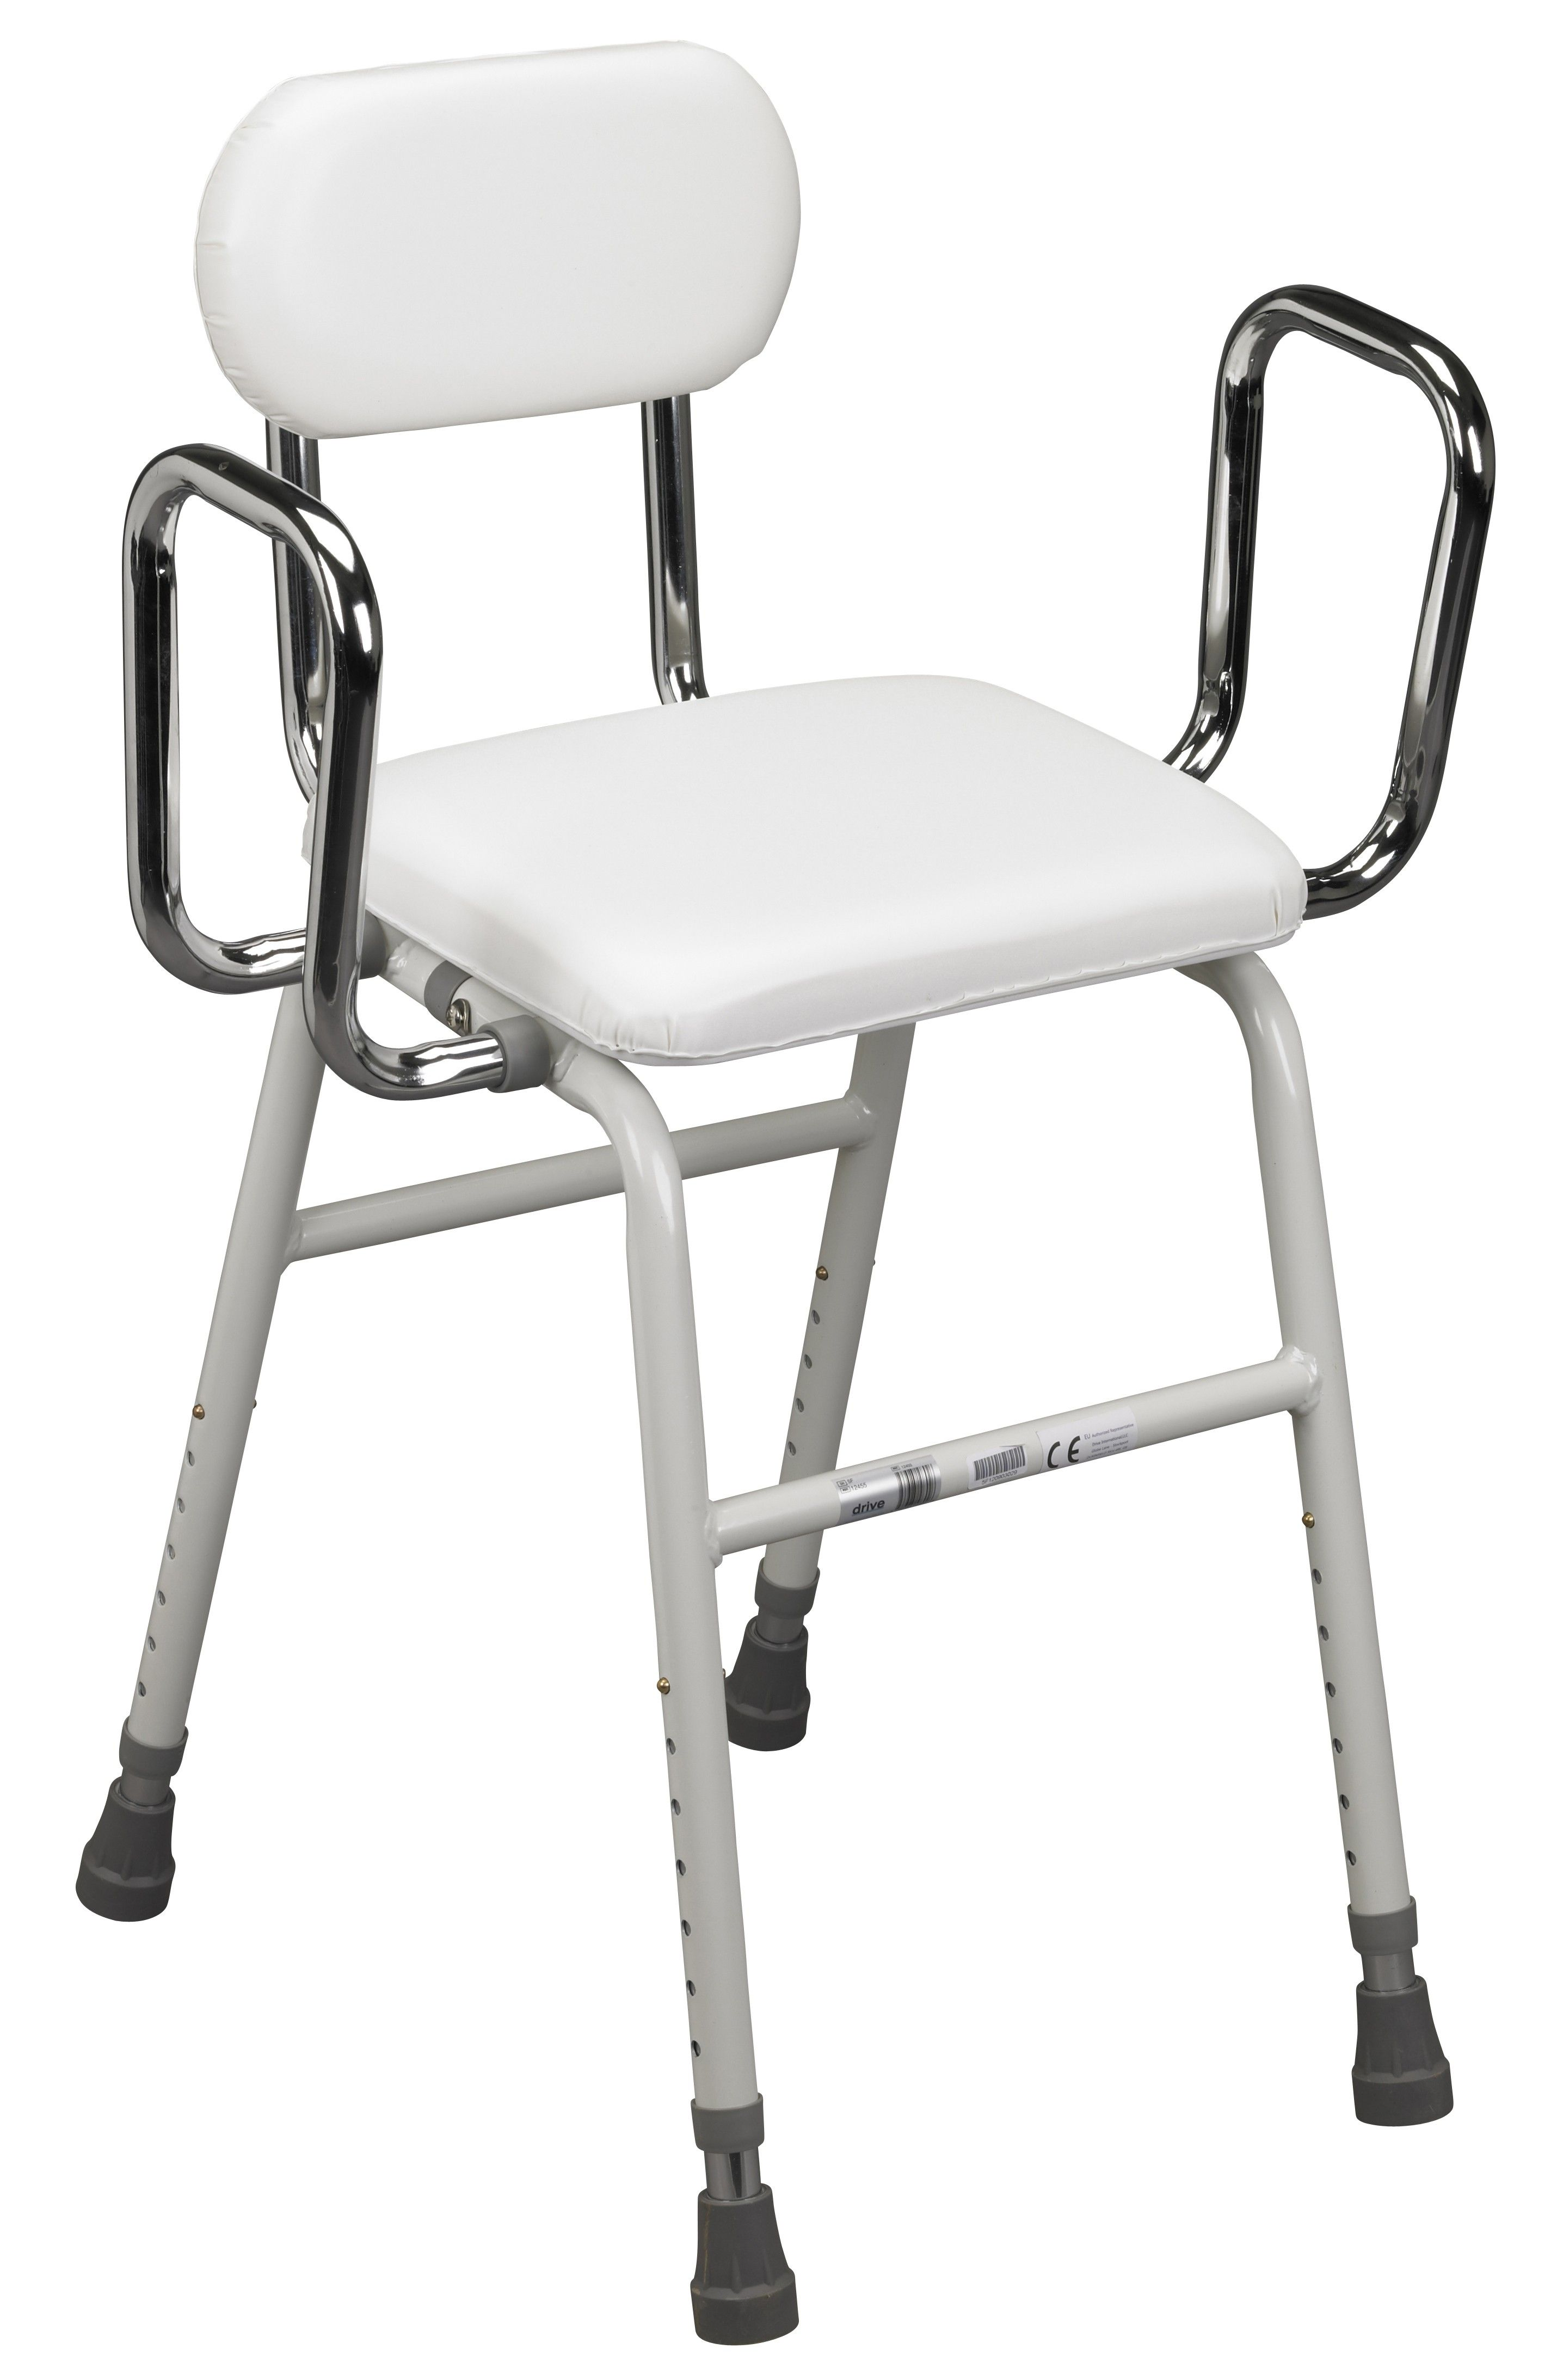 Discount Shower Benches Stools Amp Shower Transfer Bench